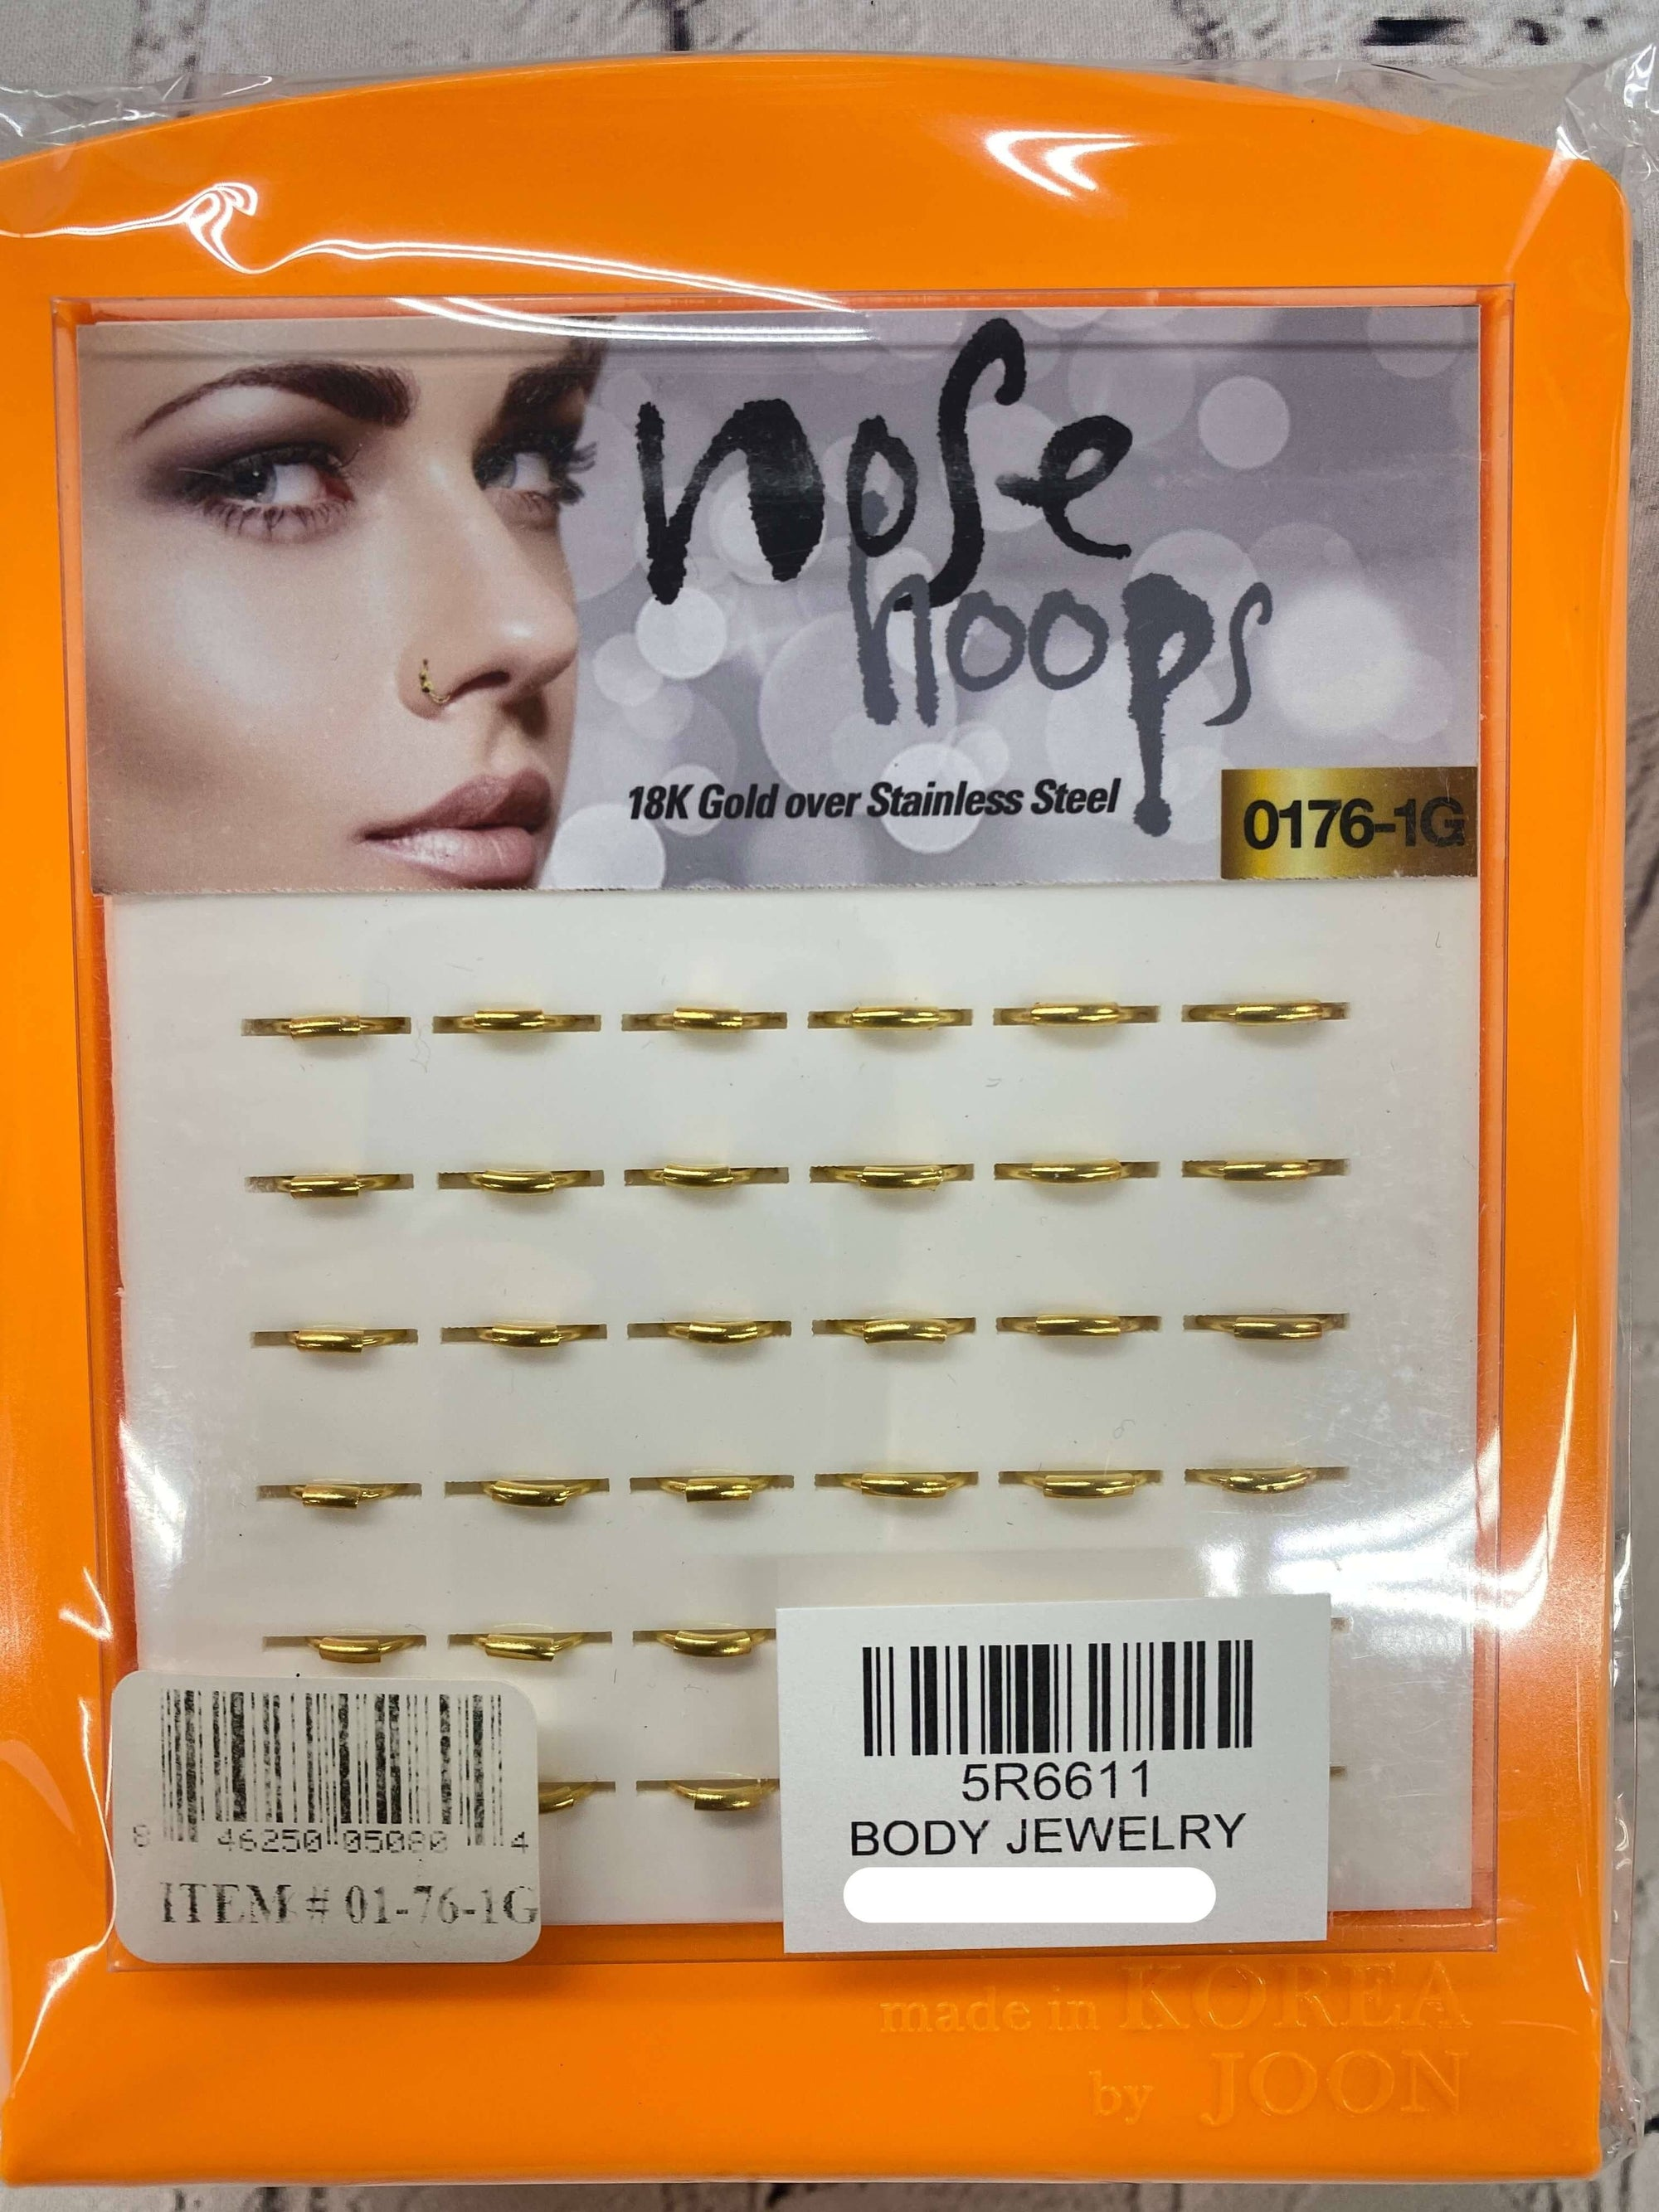 Nose Hoops 18K Gold Stainless Steel #01-76-1G(36pc)